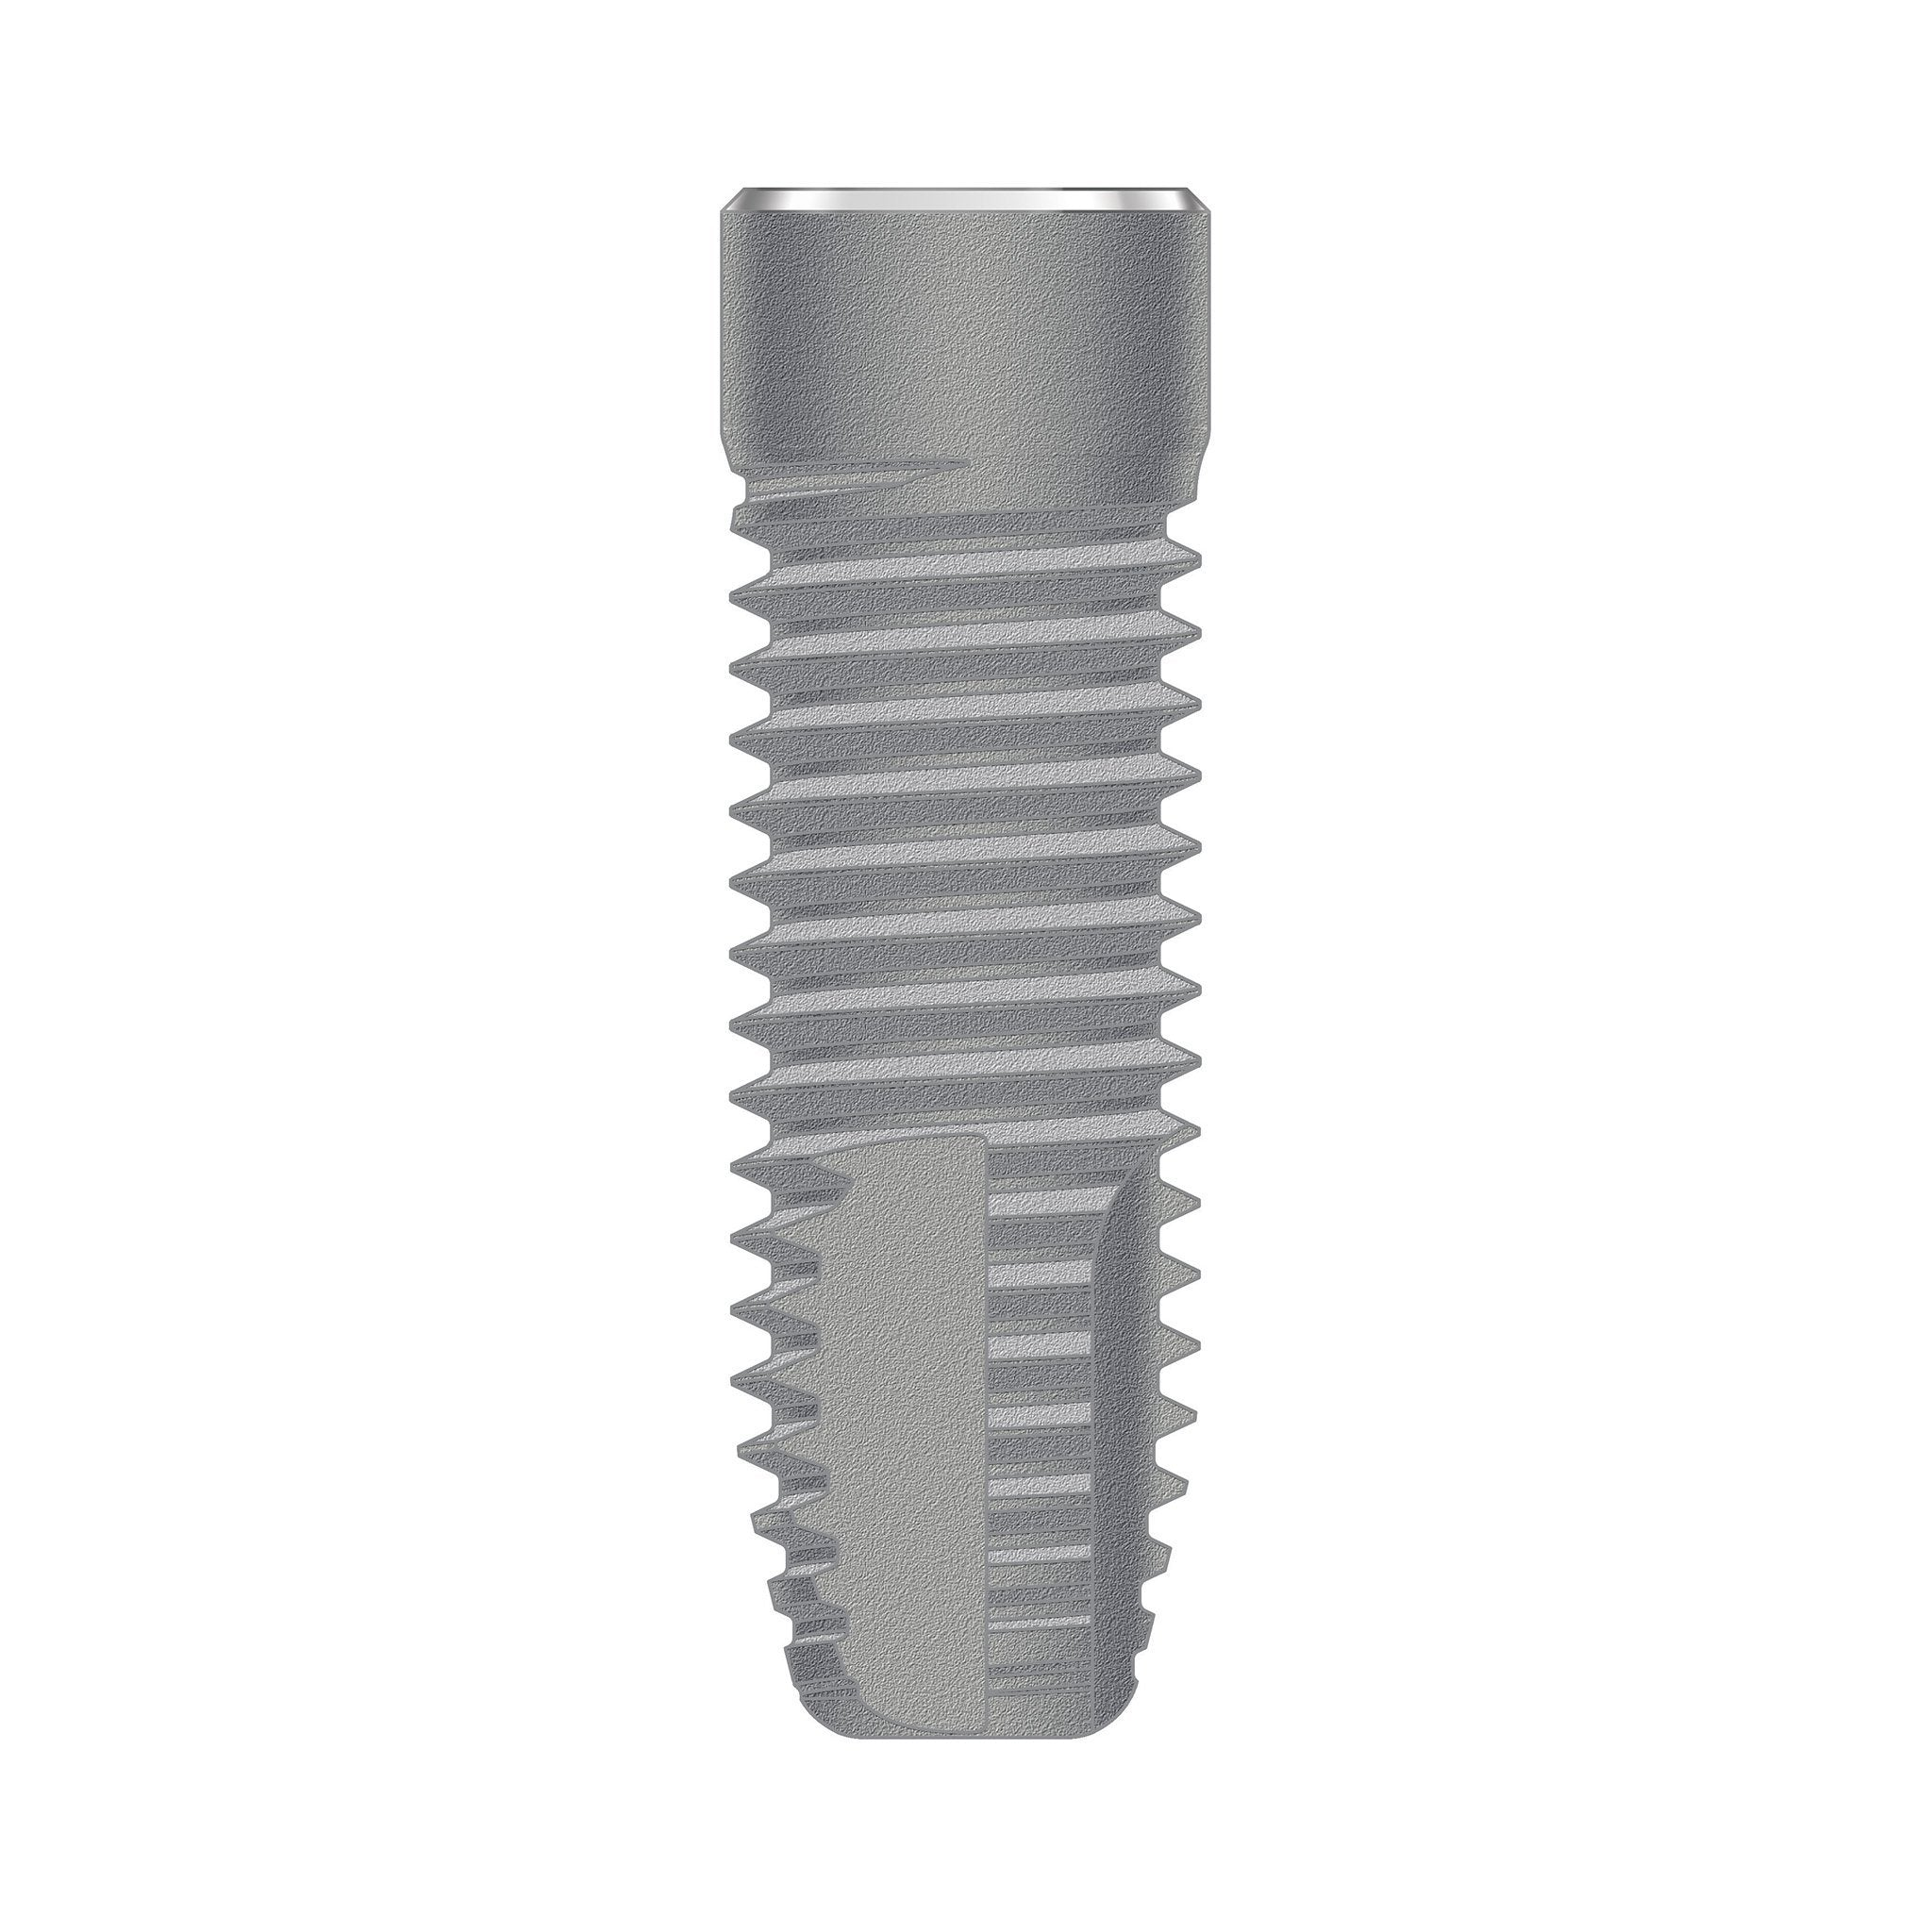 PrimaConnex® TC Straight Implant WD Ø 5.0 x 13mm | K3